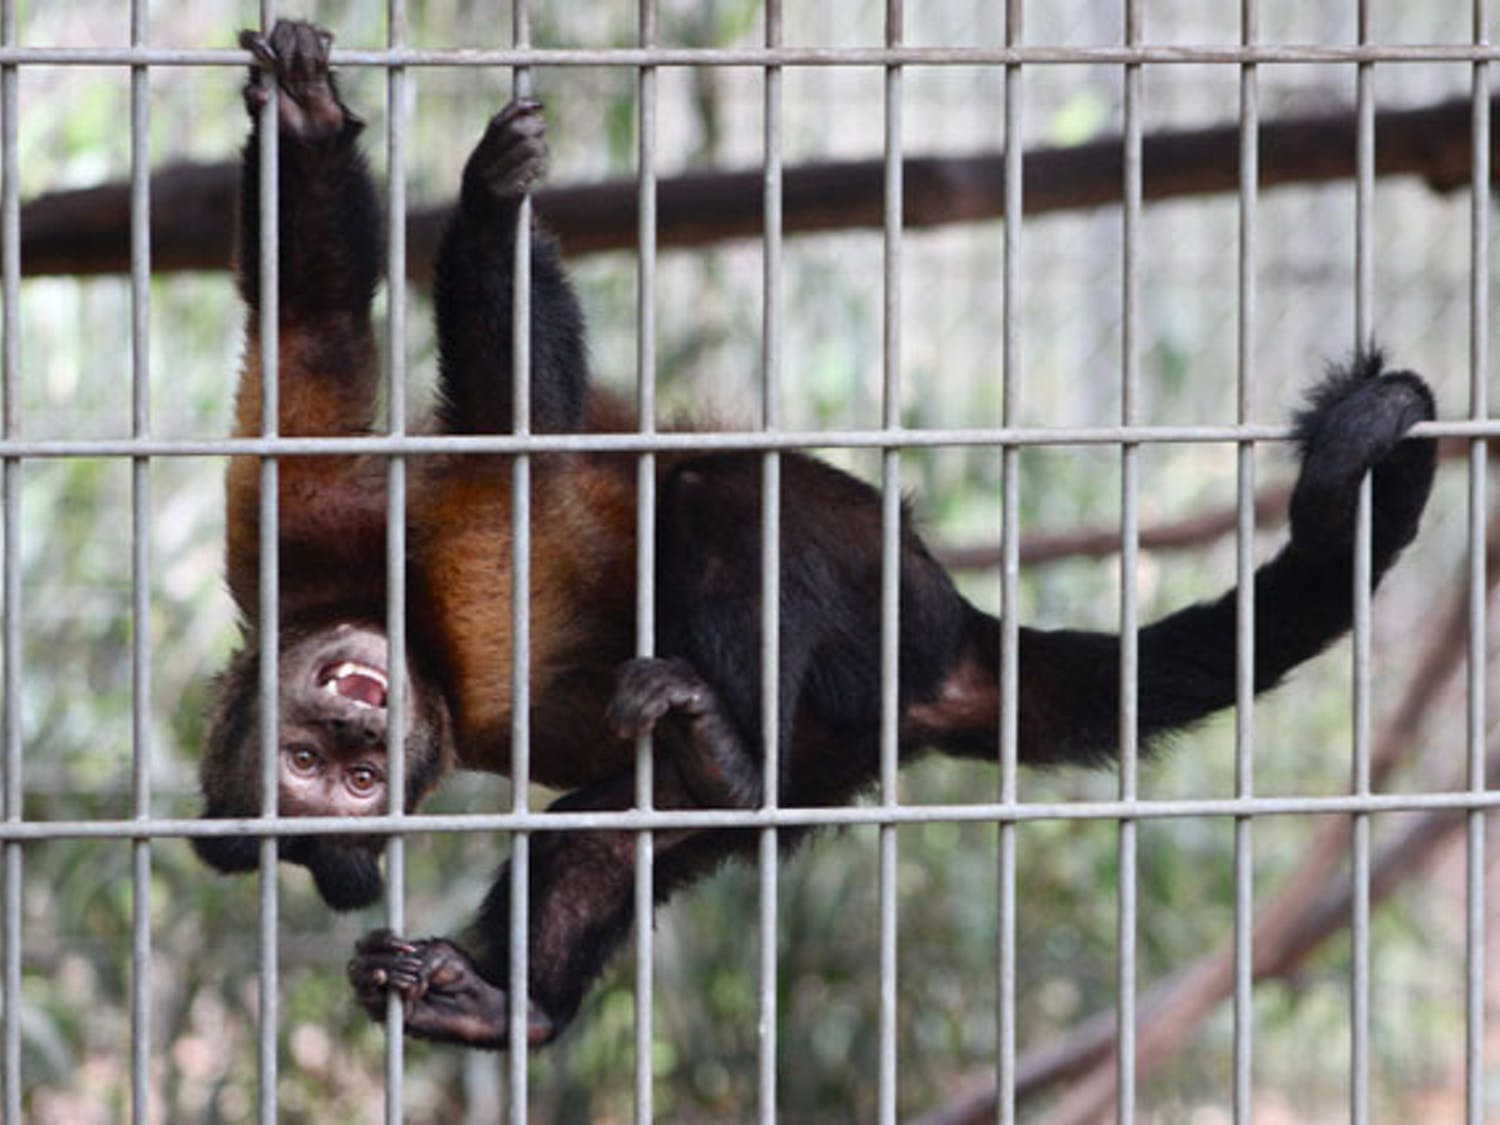 A brown capuchin monkey hangs from its cage at Jungle Friends Primate Sanctuary.